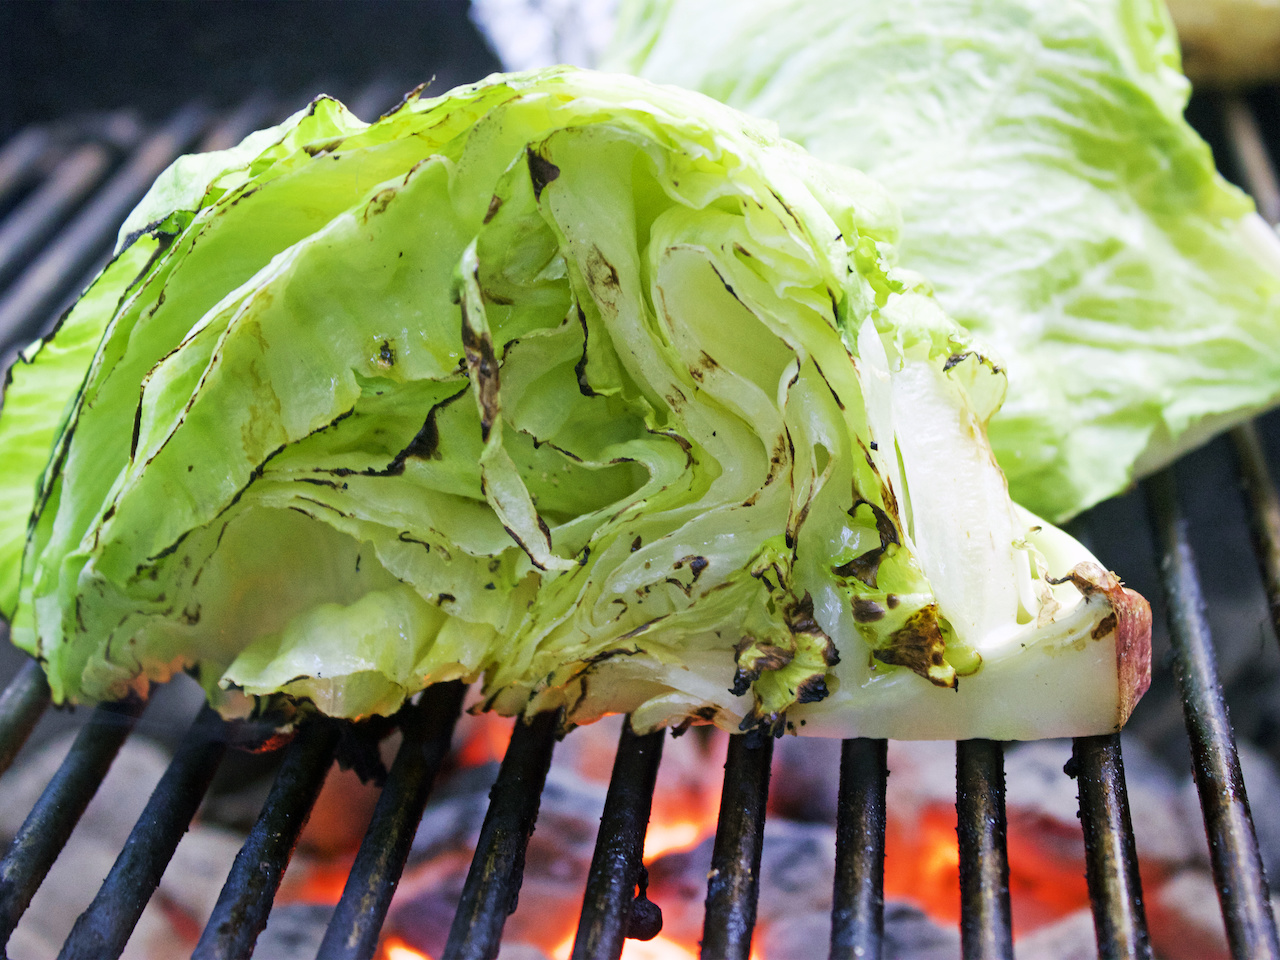 Grill the iceberg lettuce to enhance the flavor.